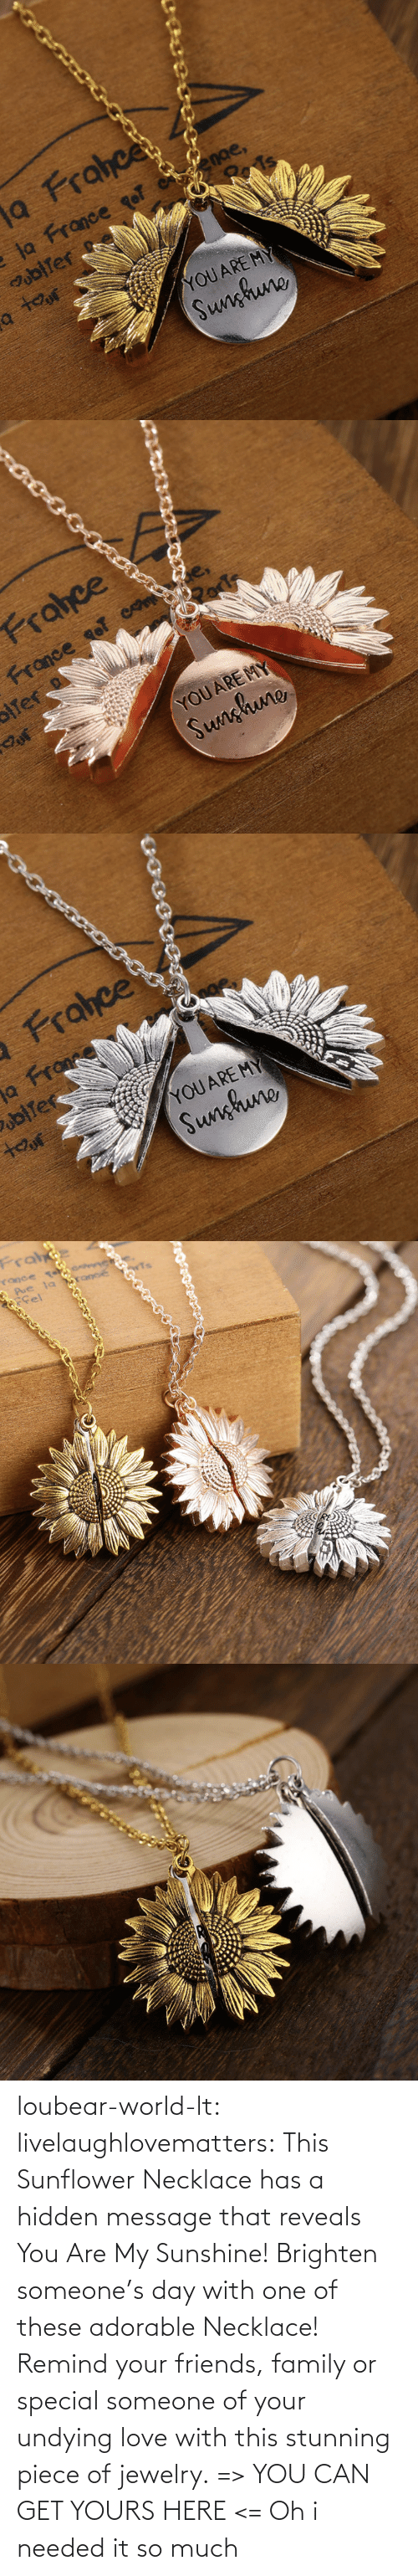 It So: loubear-world-lt: livelaughlovematters:   This Sunflower Necklace has a hidden message that reveals You Are My Sunshine! Brighten someone's day with one of these adorable Necklace! Remind your friends, family or special someone of your undying love with this stunning piece of jewelry. => YOU CAN GET YOURS HERE <=    Oh i needed it so much